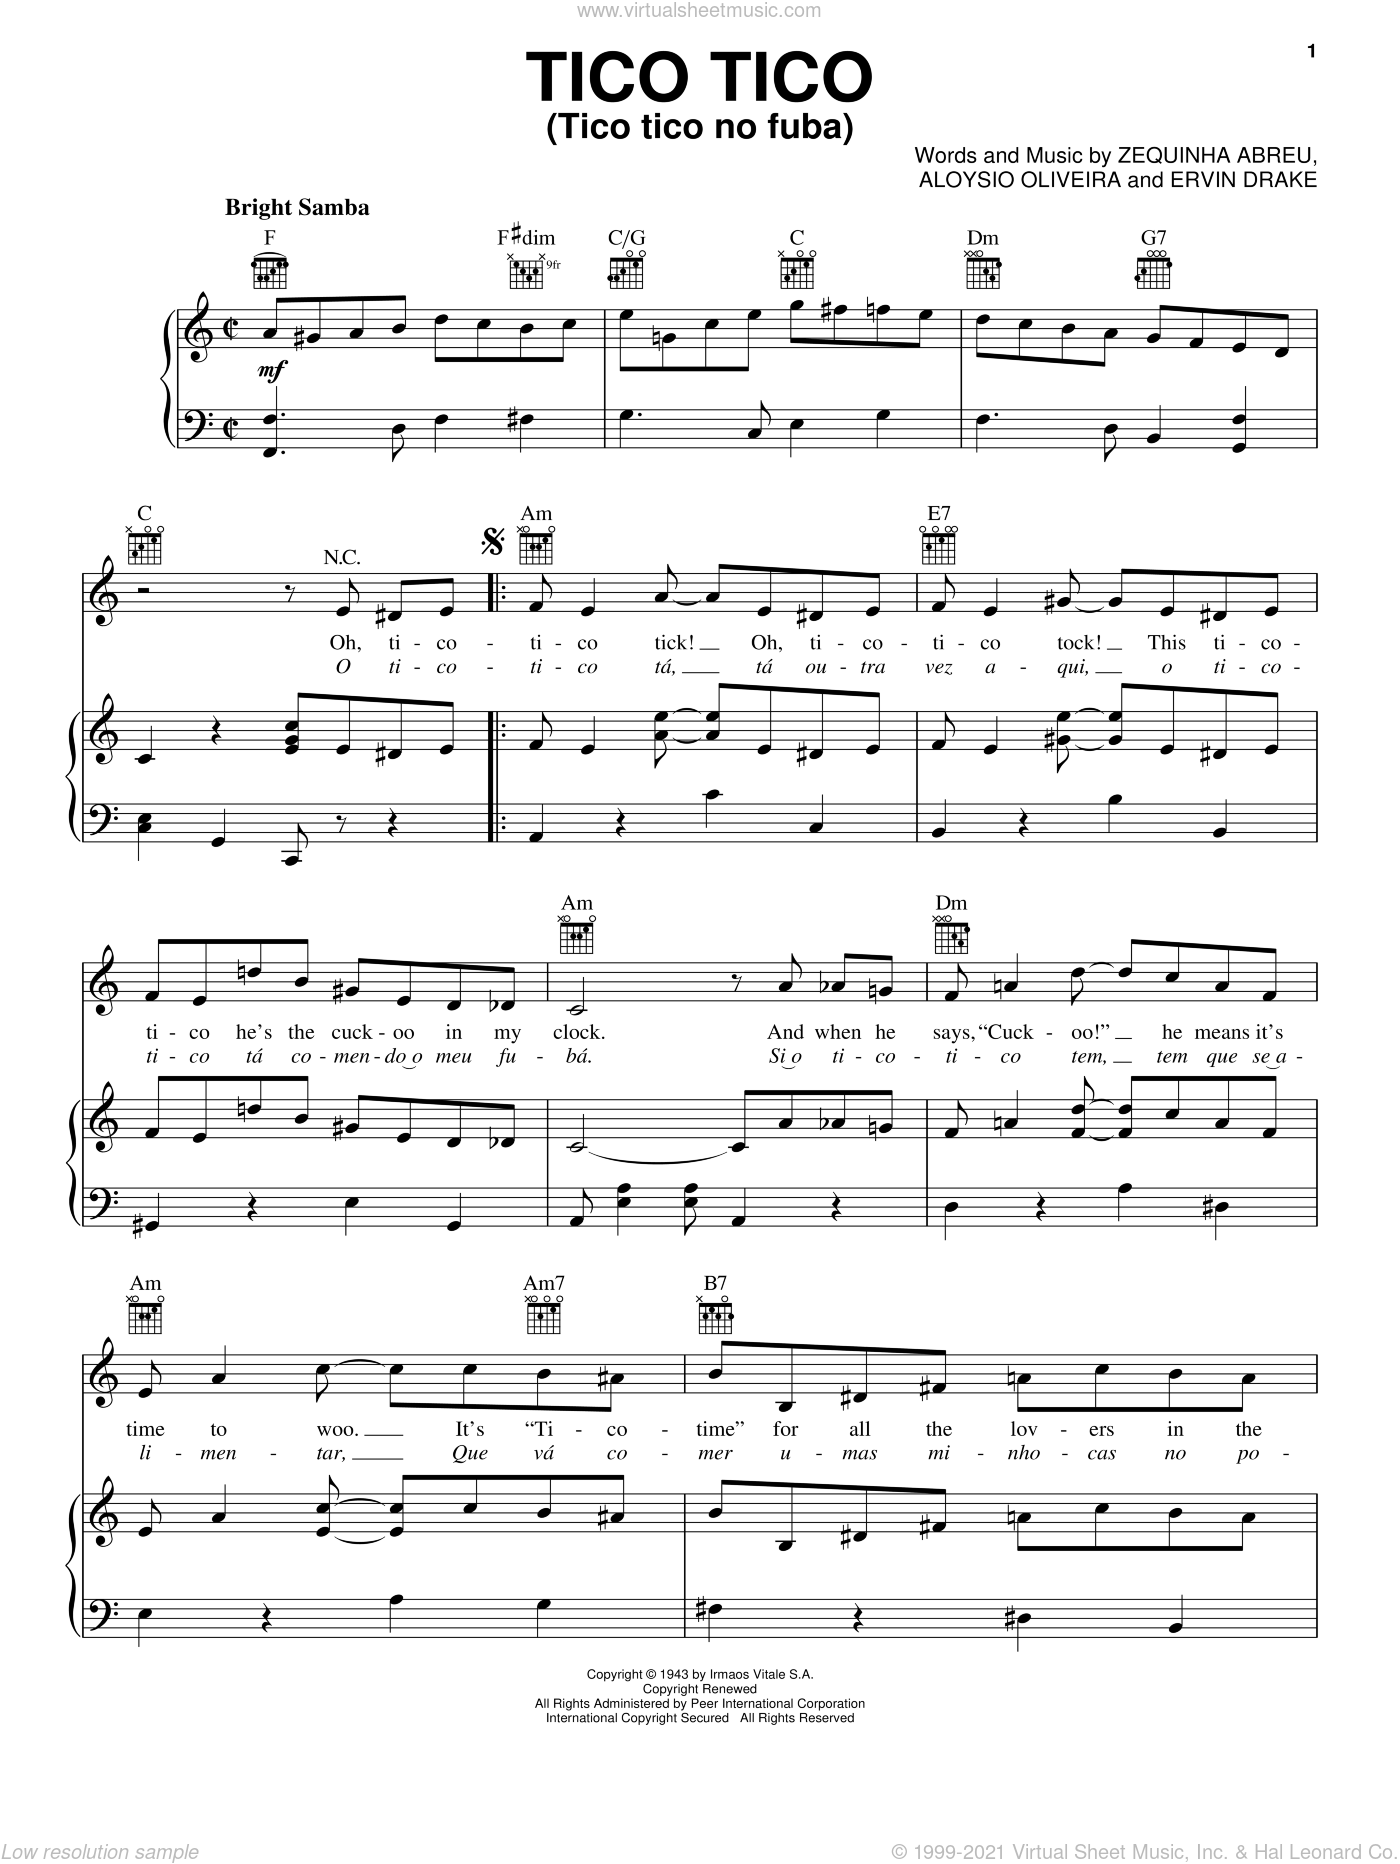 Tico Tico (Tico Tico No Fuba) sheet music for voice, piano or guitar by Ervin Drake